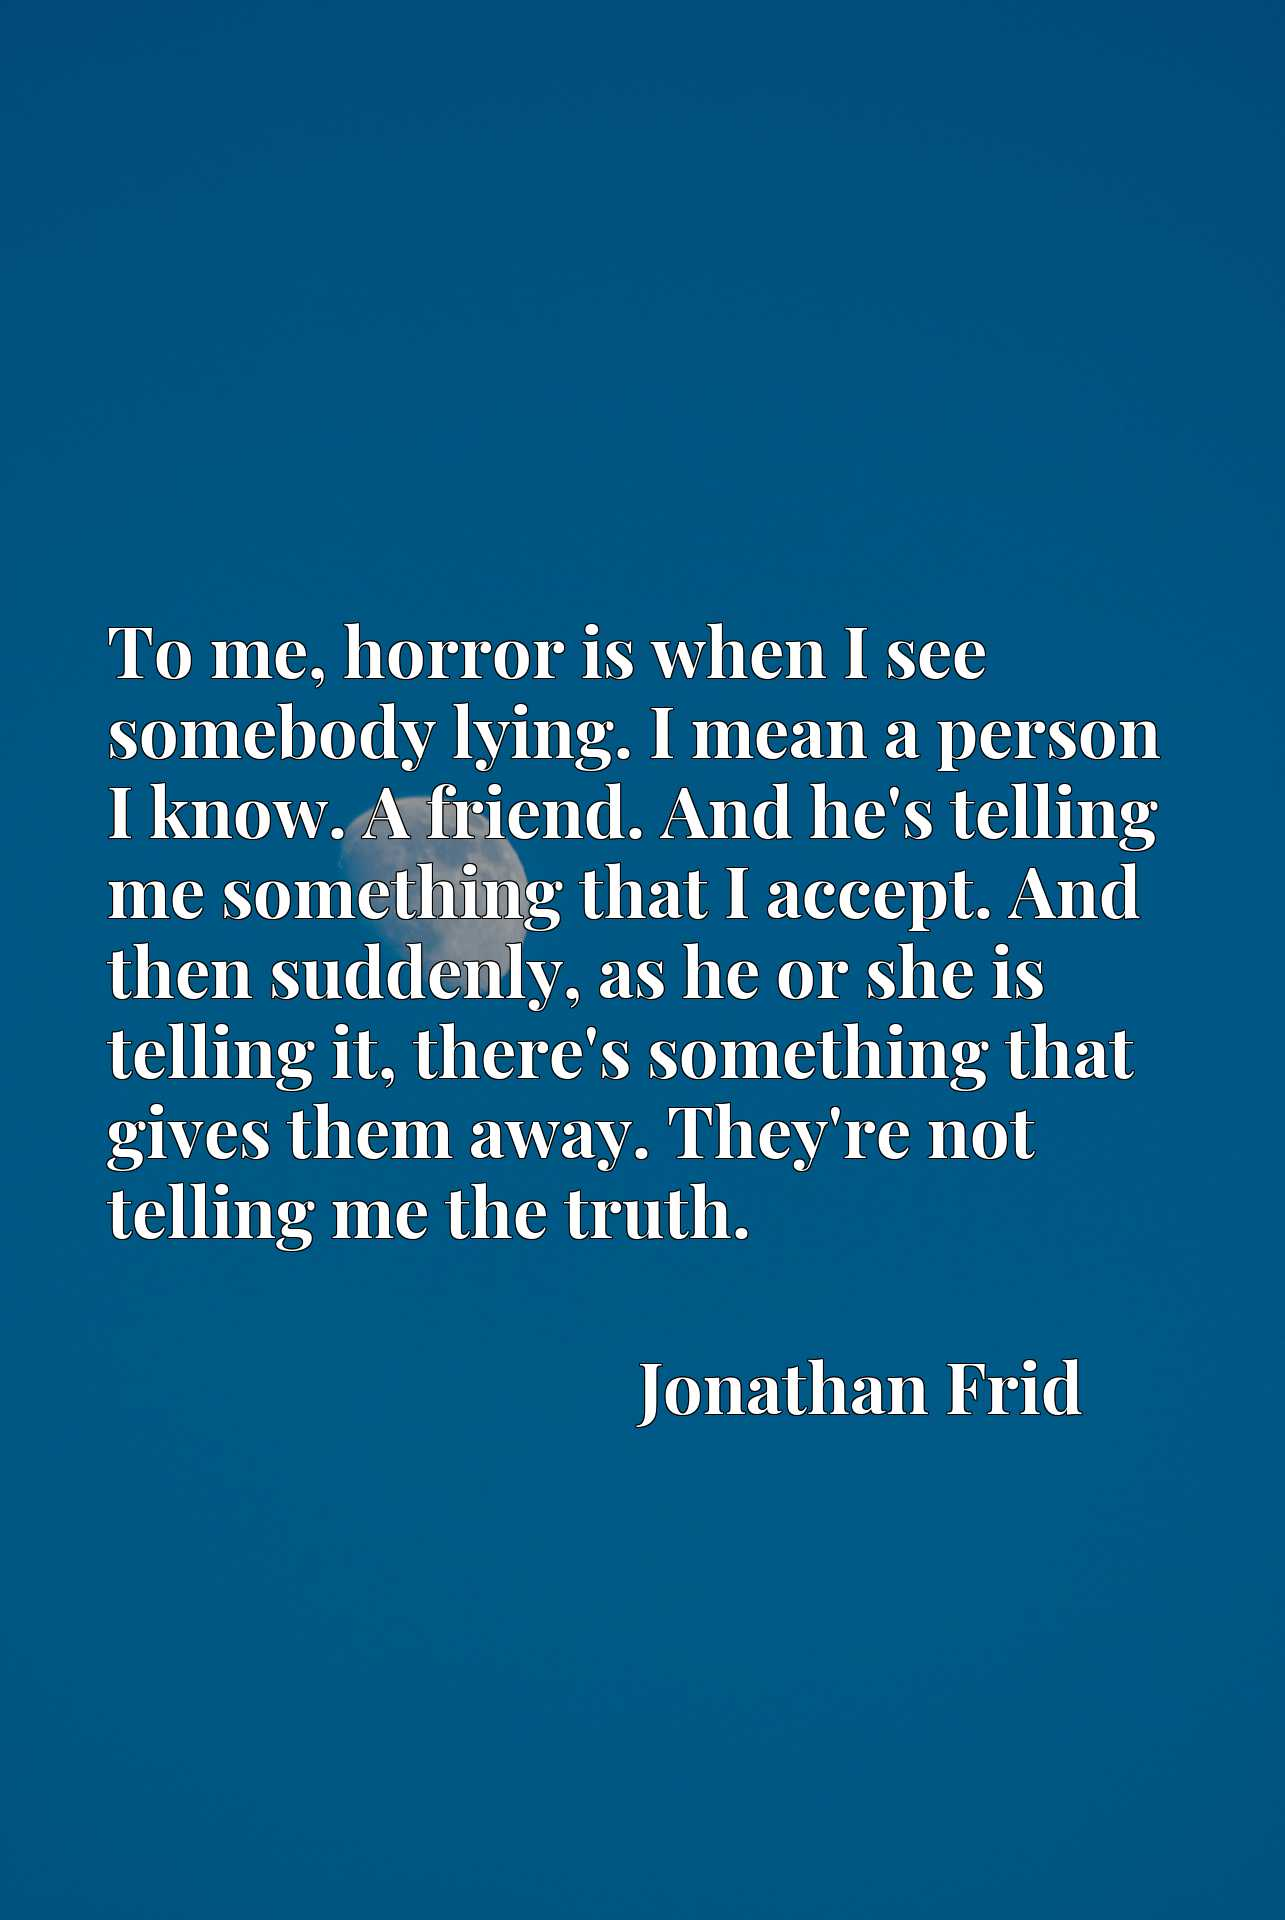 To me, horror is when I see somebody lying. I mean a person I know. A friend. And he's telling me something that I accept. And then suddenly, as he or she is telling it, there's something that gives them away. They're not telling me the truth.